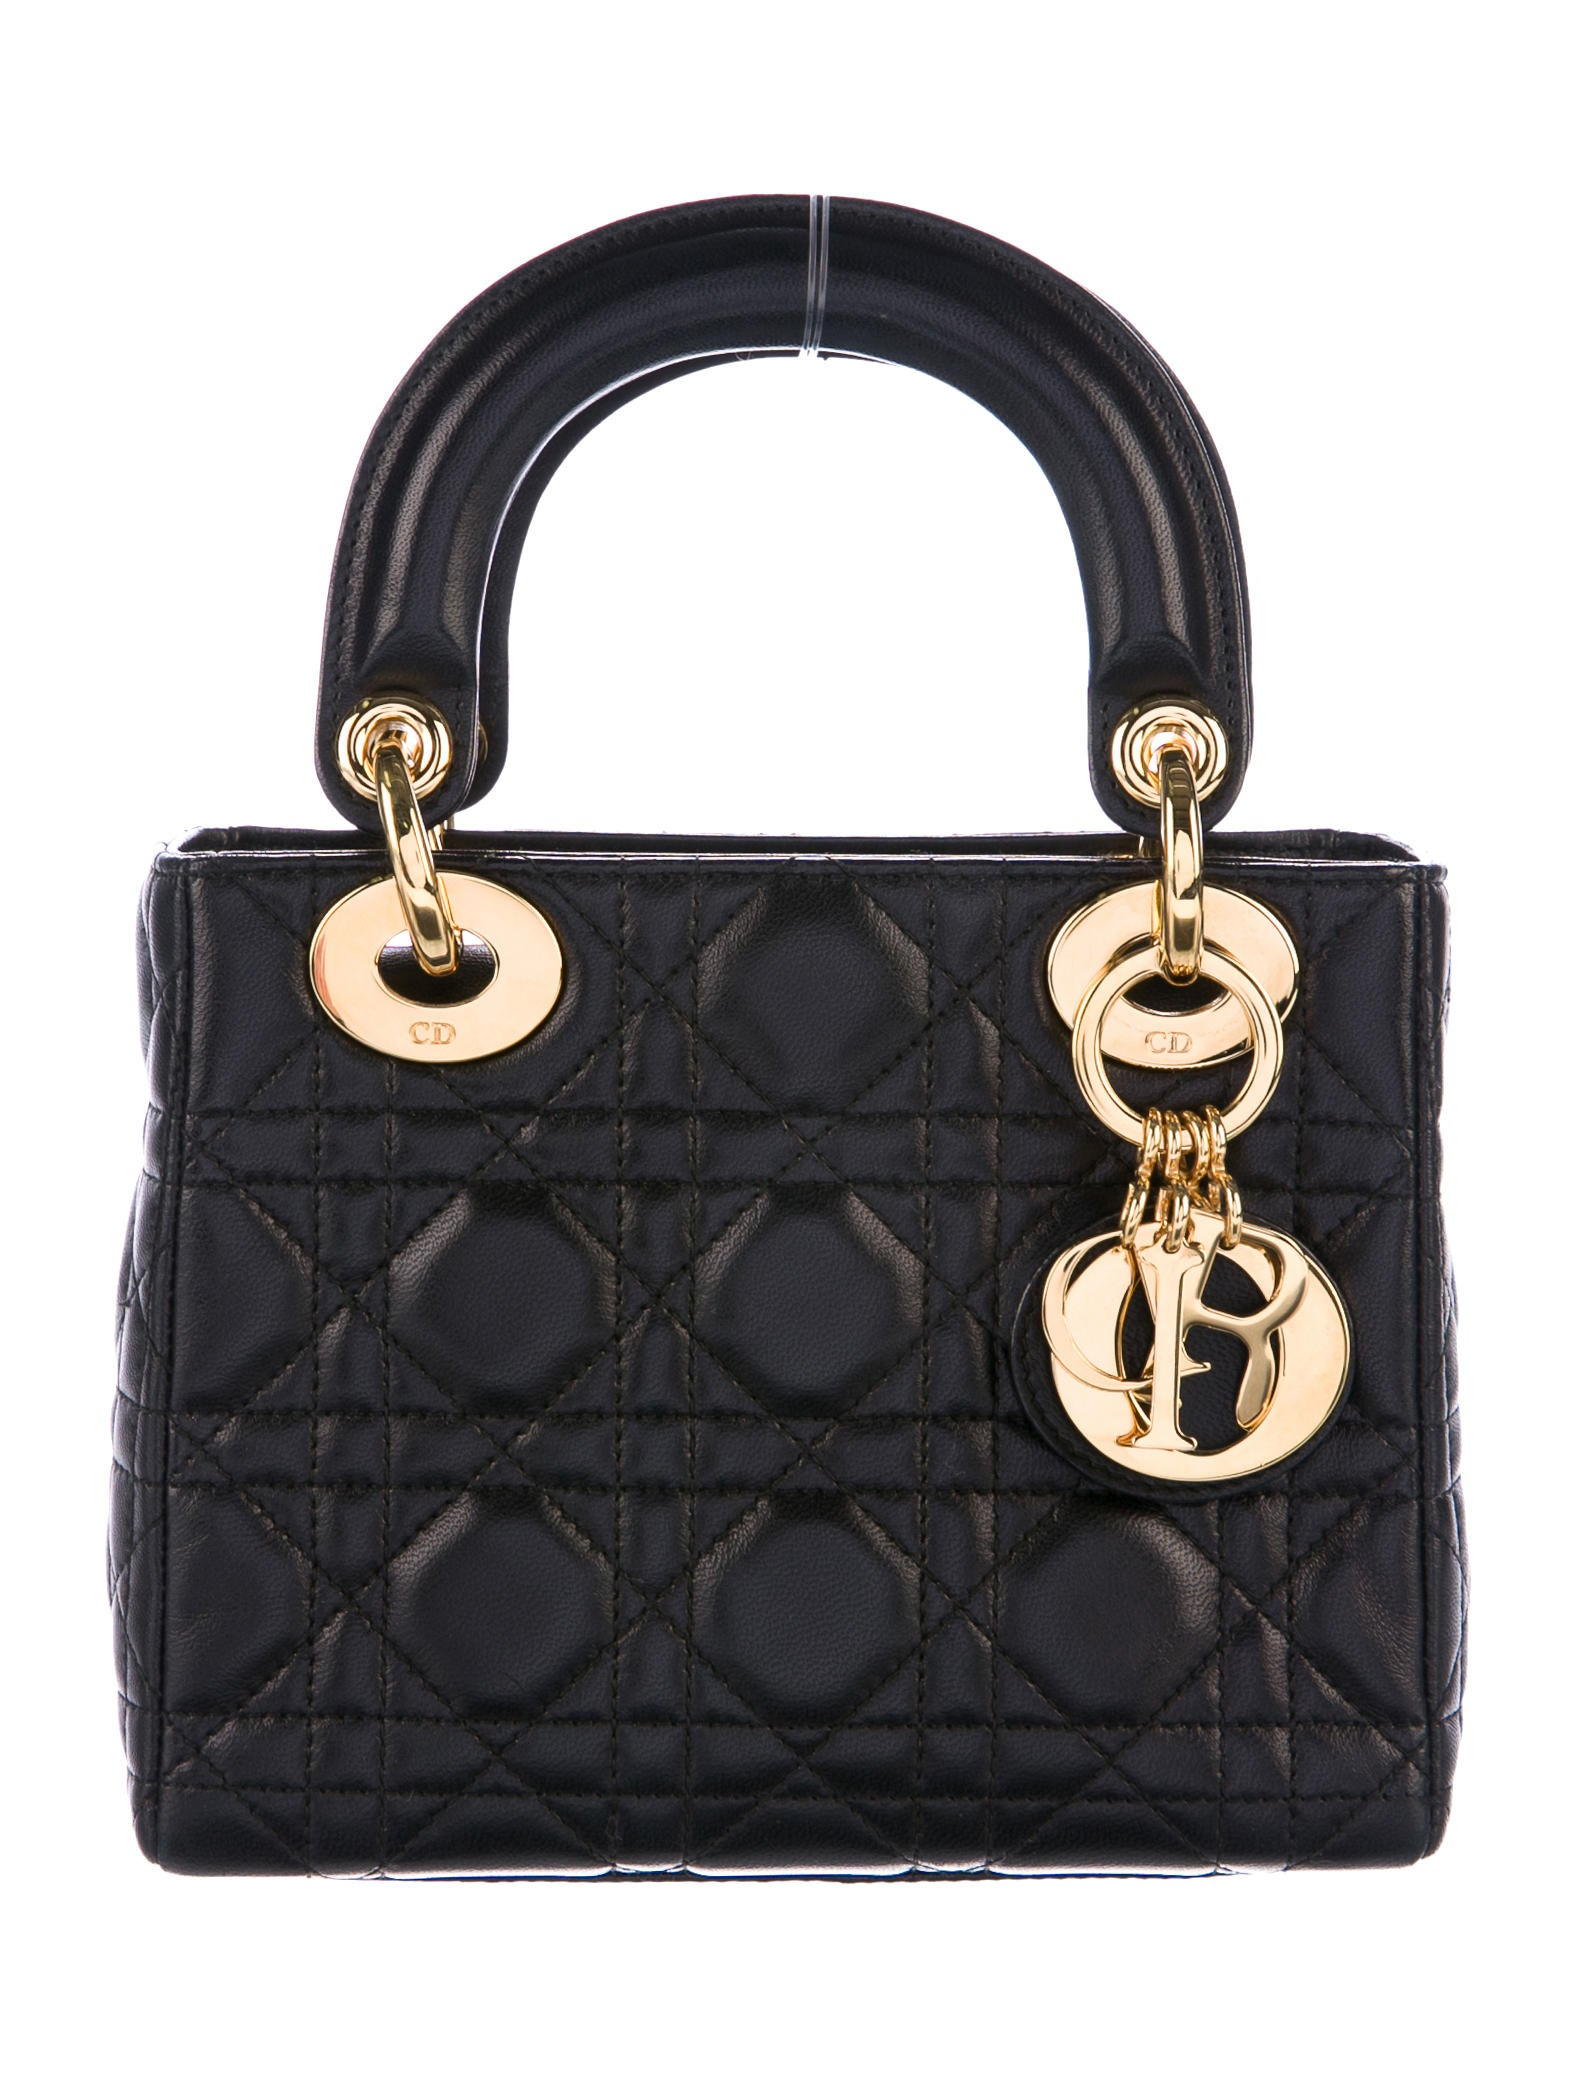 Christian Dior Vintage Mini Lady Dior Bag Handbags